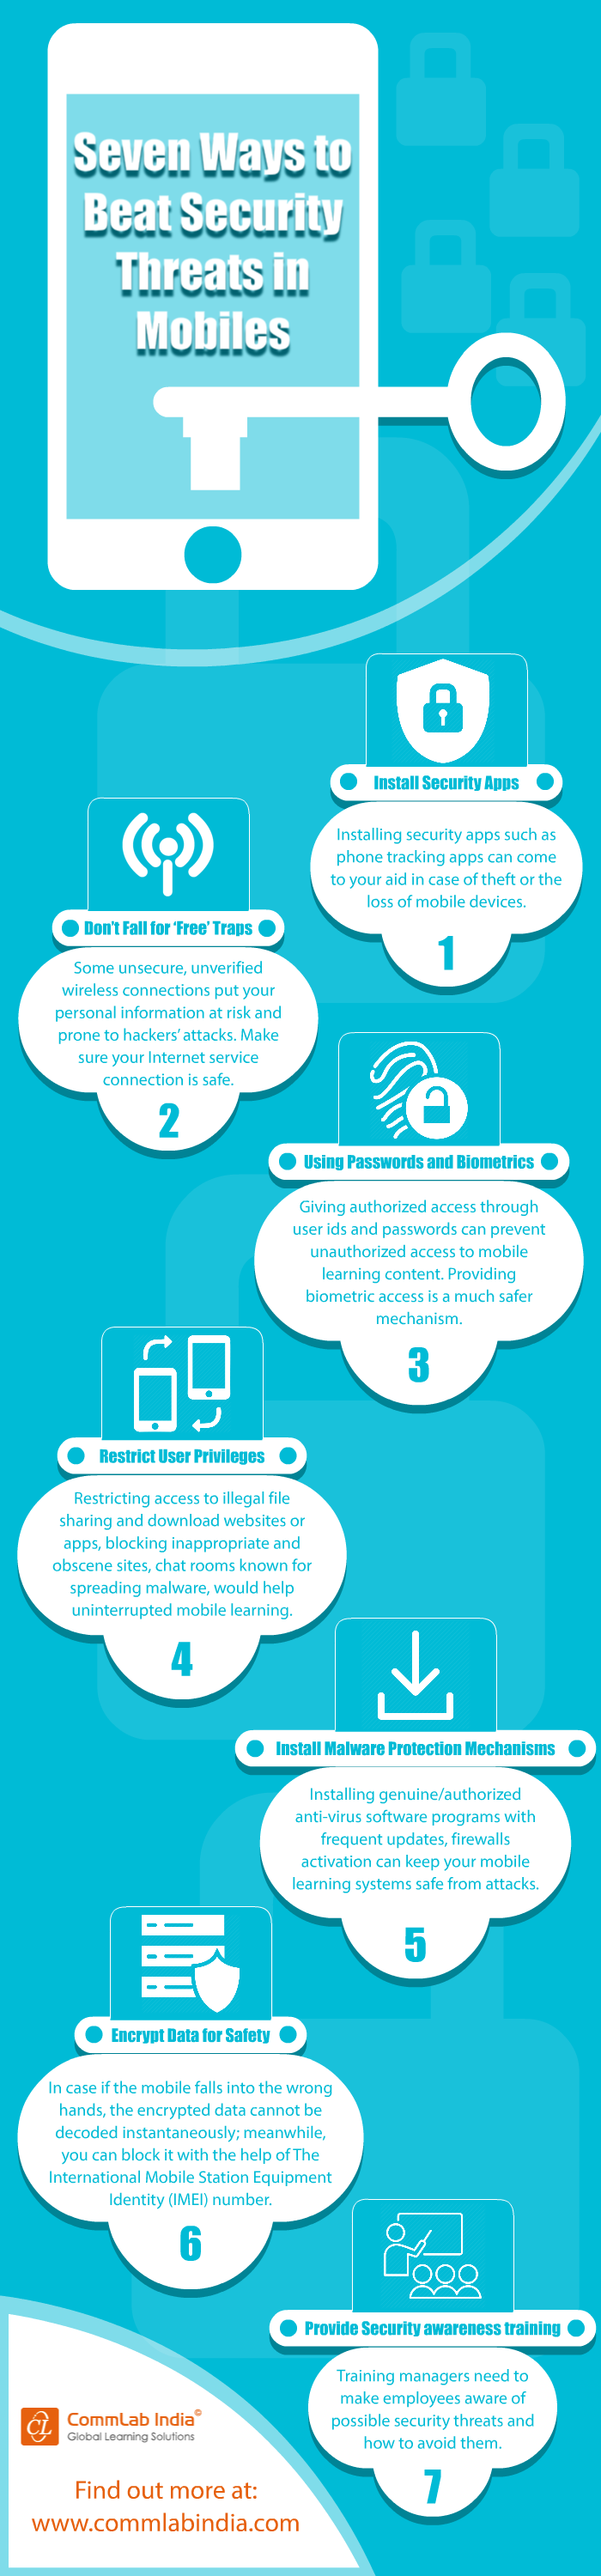 Seven Ways To Beat Security Threats In Mobiles [Infographic]